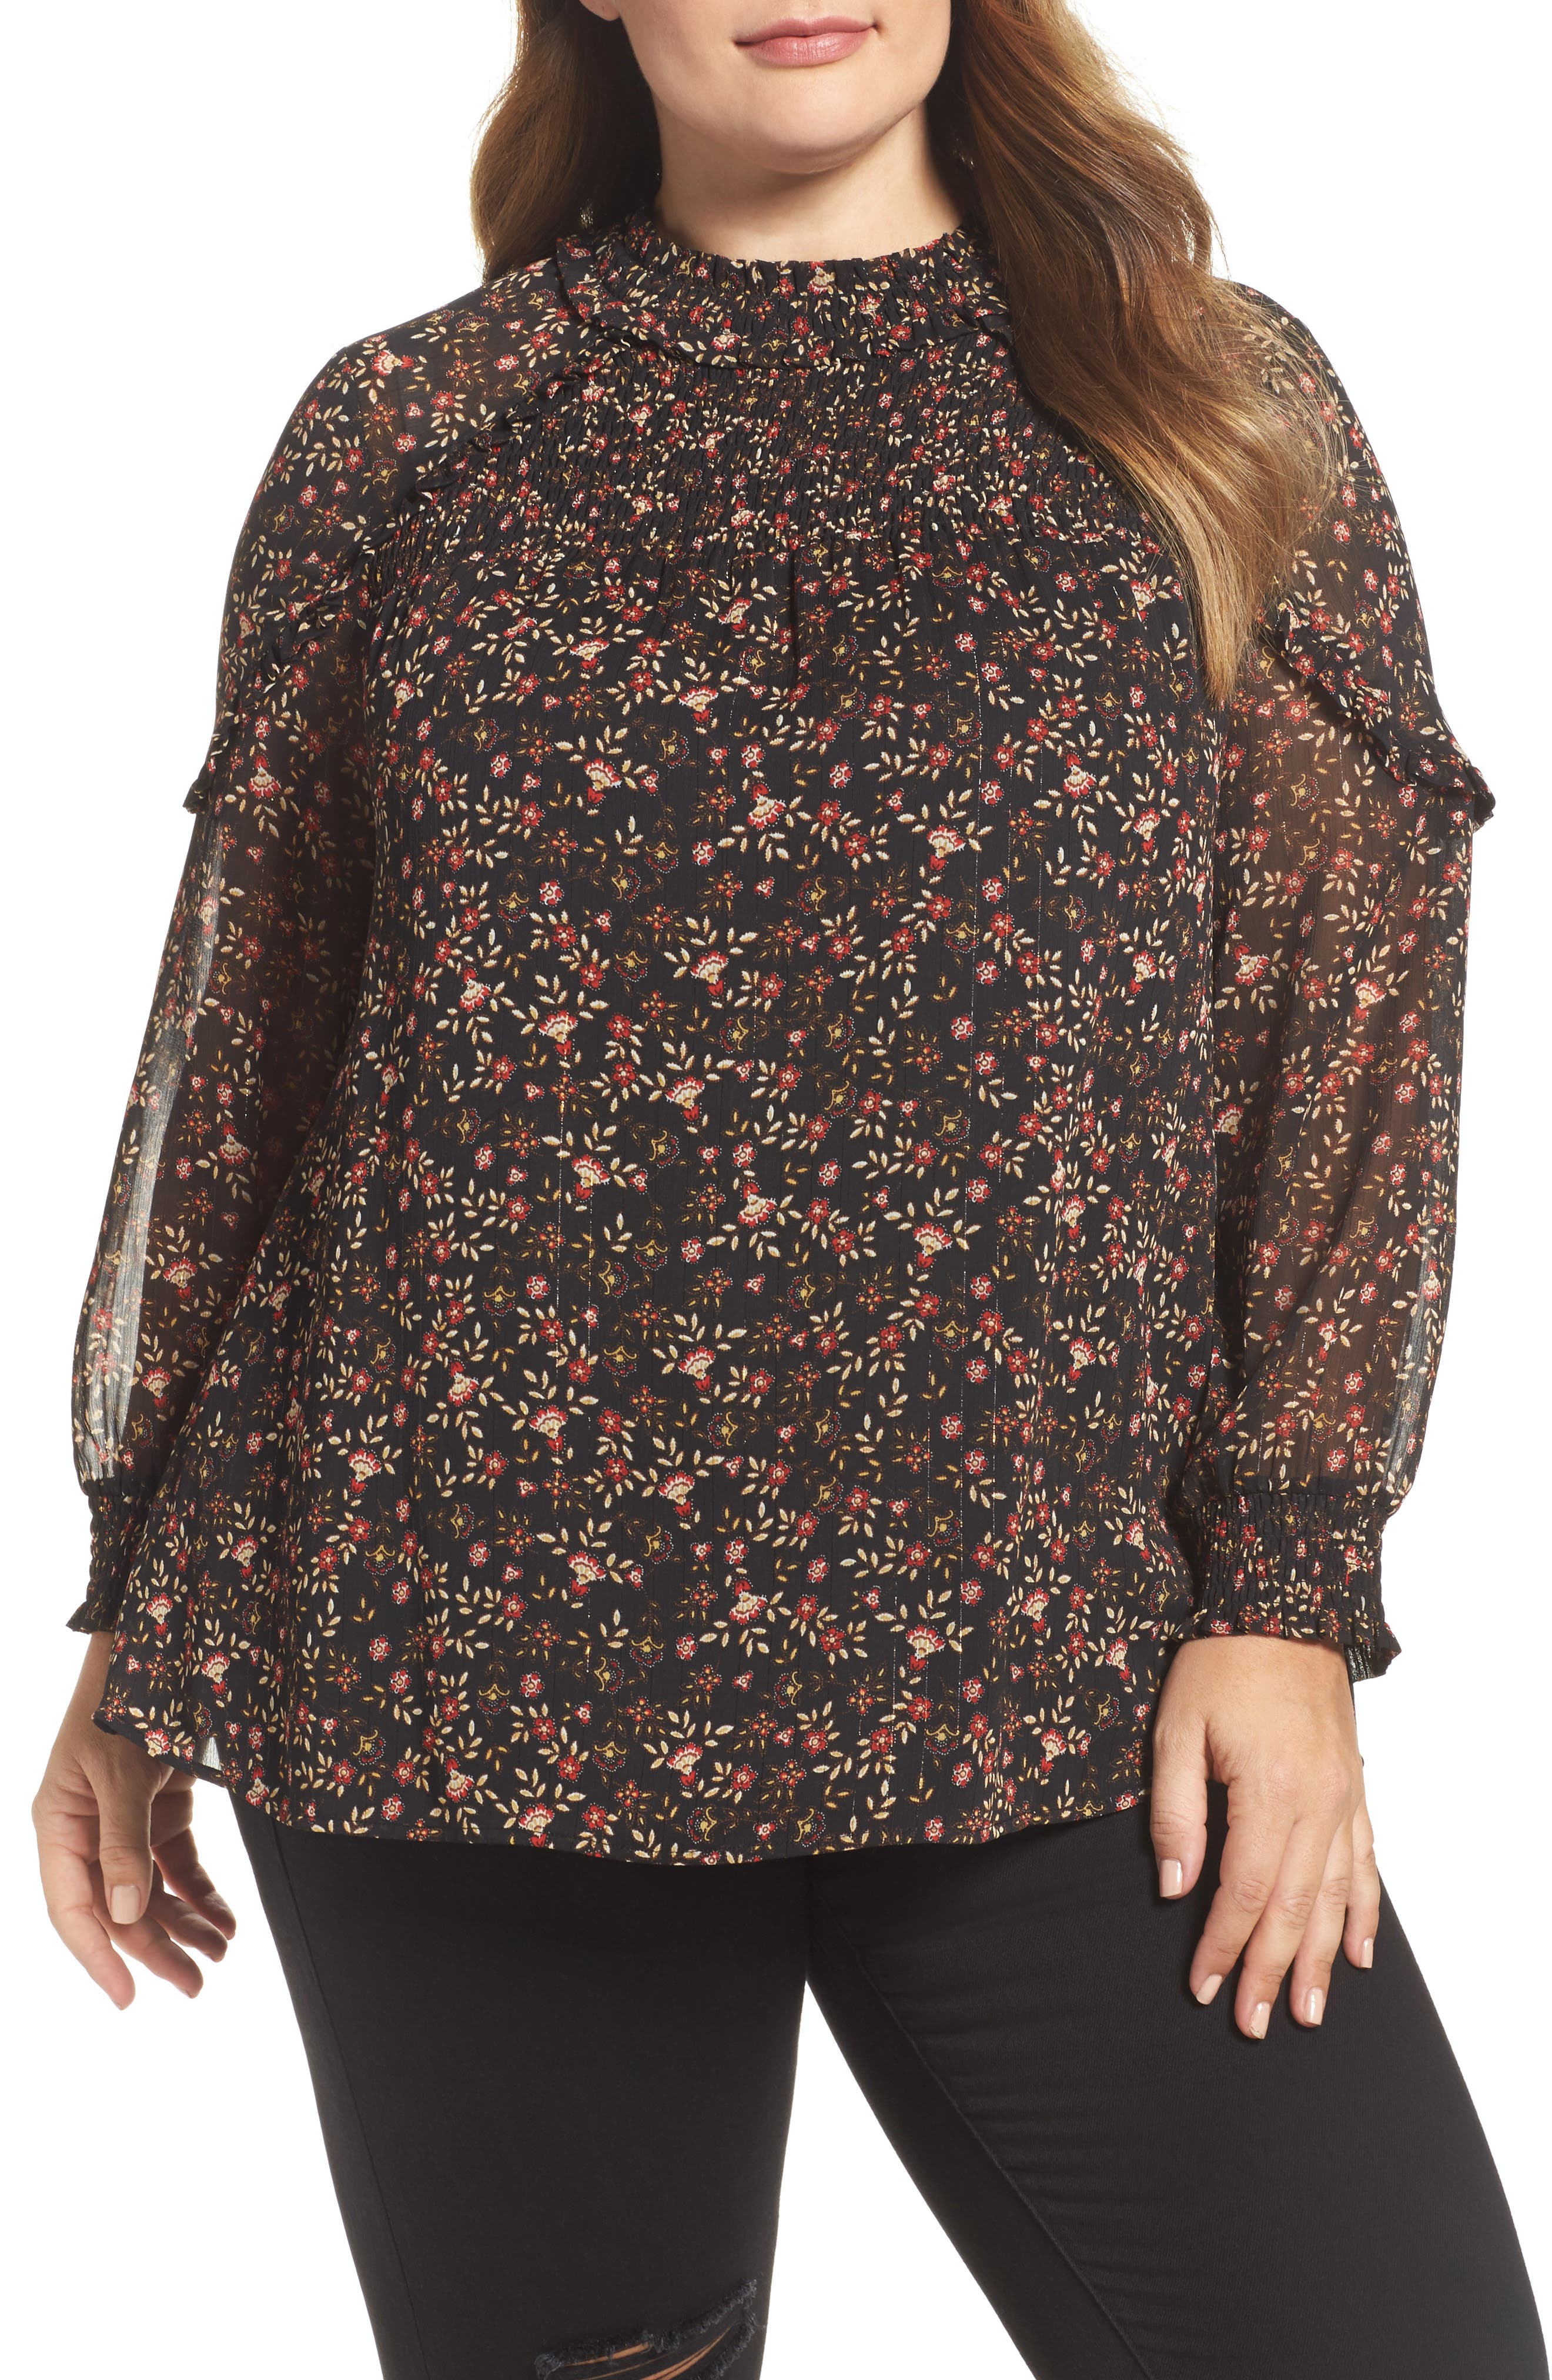 Daniel Rainn Ruffle Trim Metallic Floral Blouse (Plus Size)